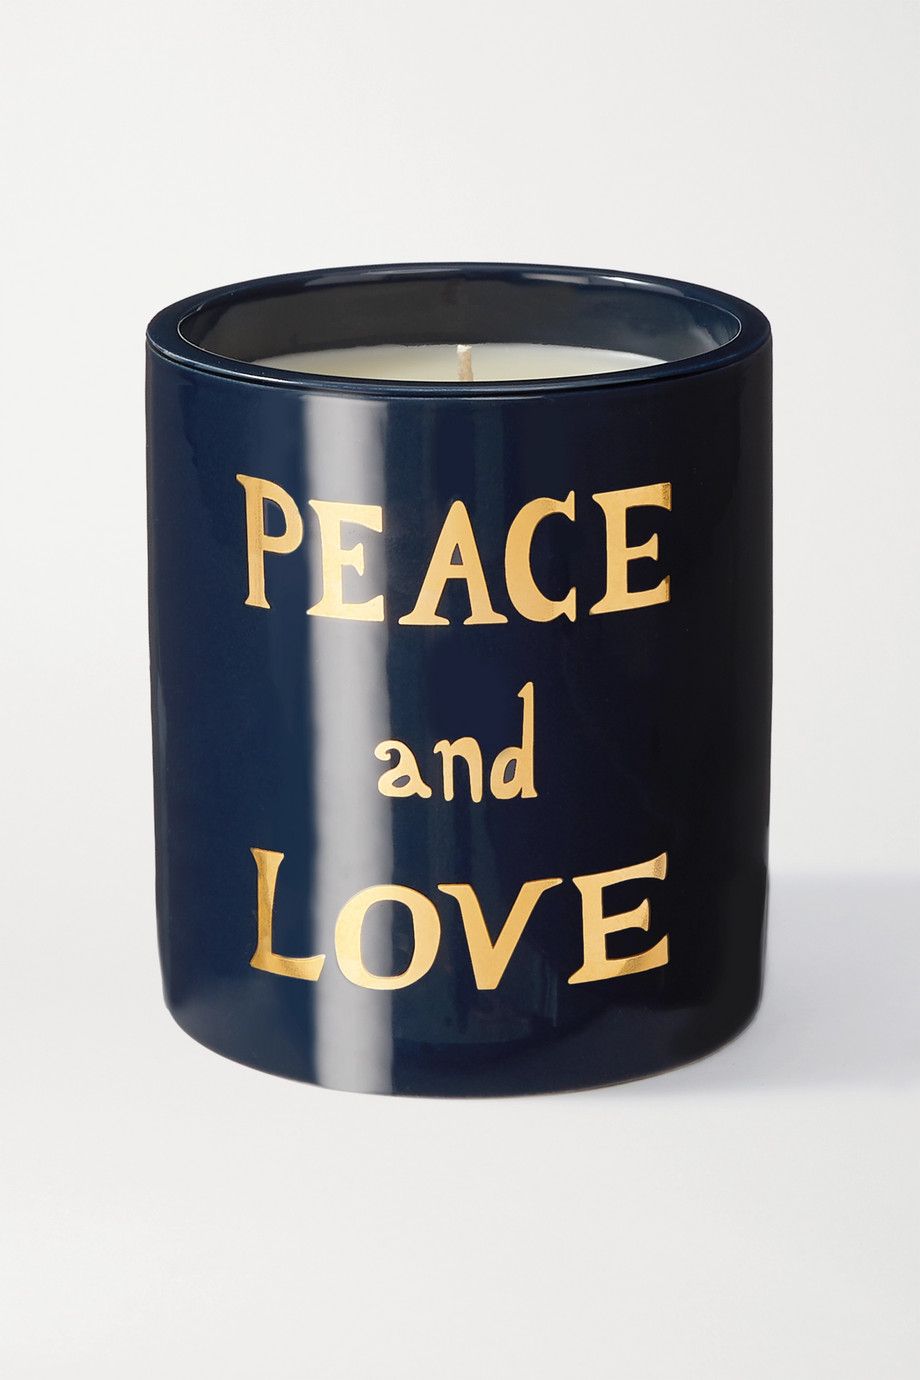 BELLA FREUD PARFUM Scented Candle - Peace and Love, 400g